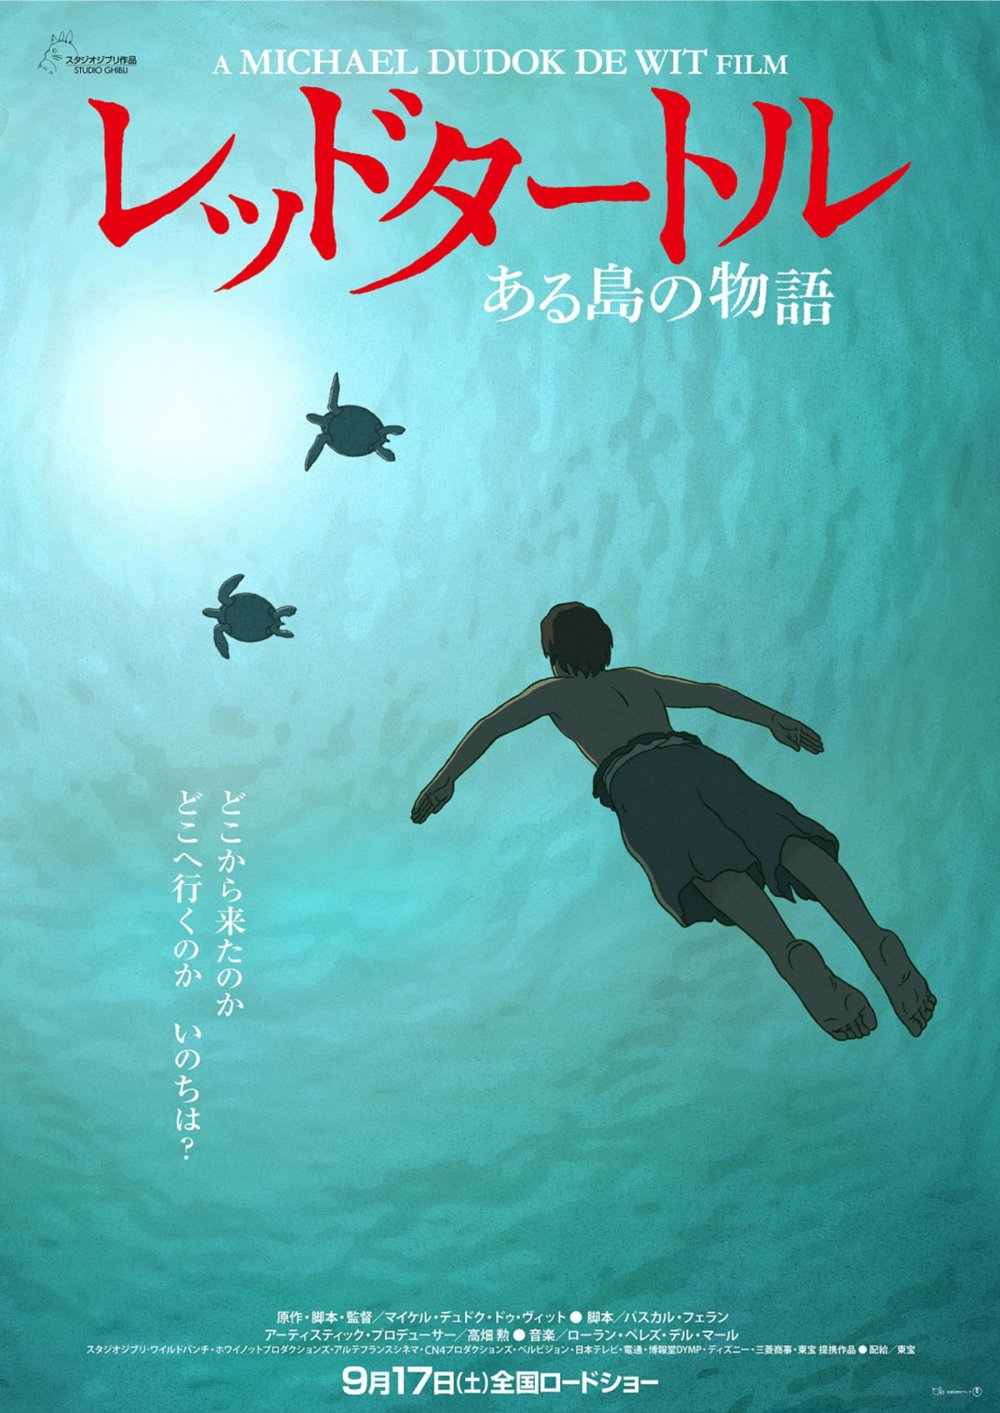 A Japanese festival poster for Michael Dudok de Wit's The Red Turtle (2016)